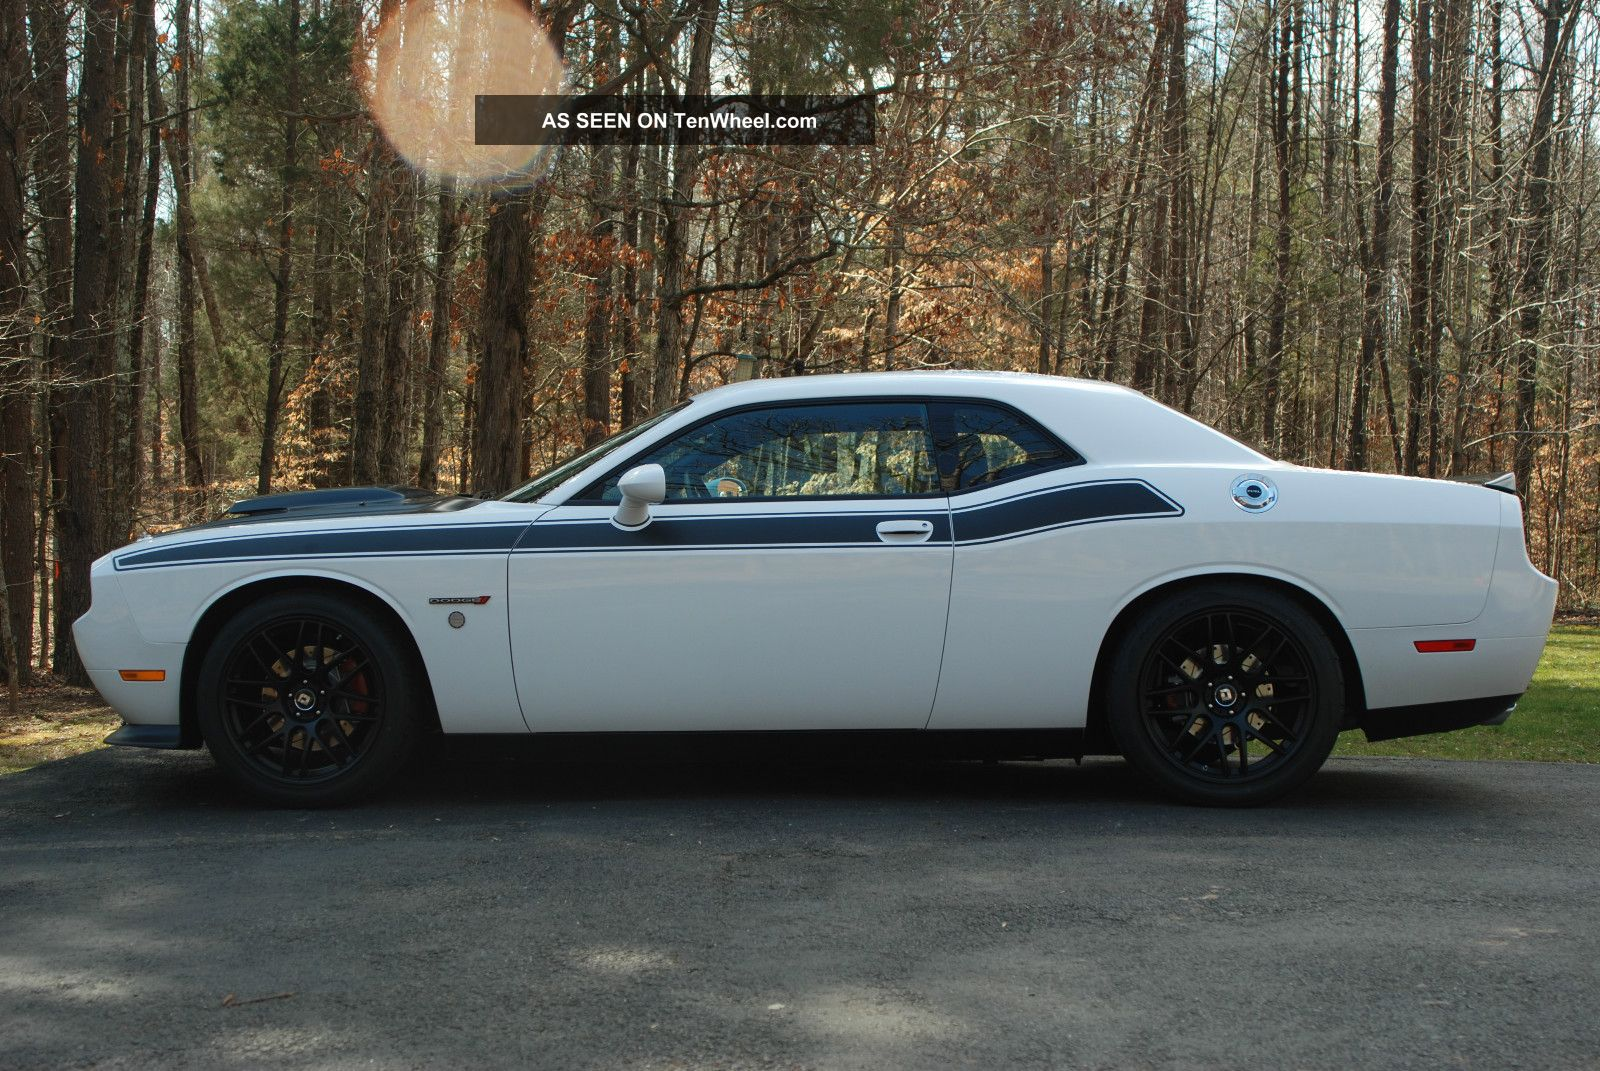 2011 dodge challenger se coupe 2 door 3 6l. Cars Review. Best American Auto & Cars Review